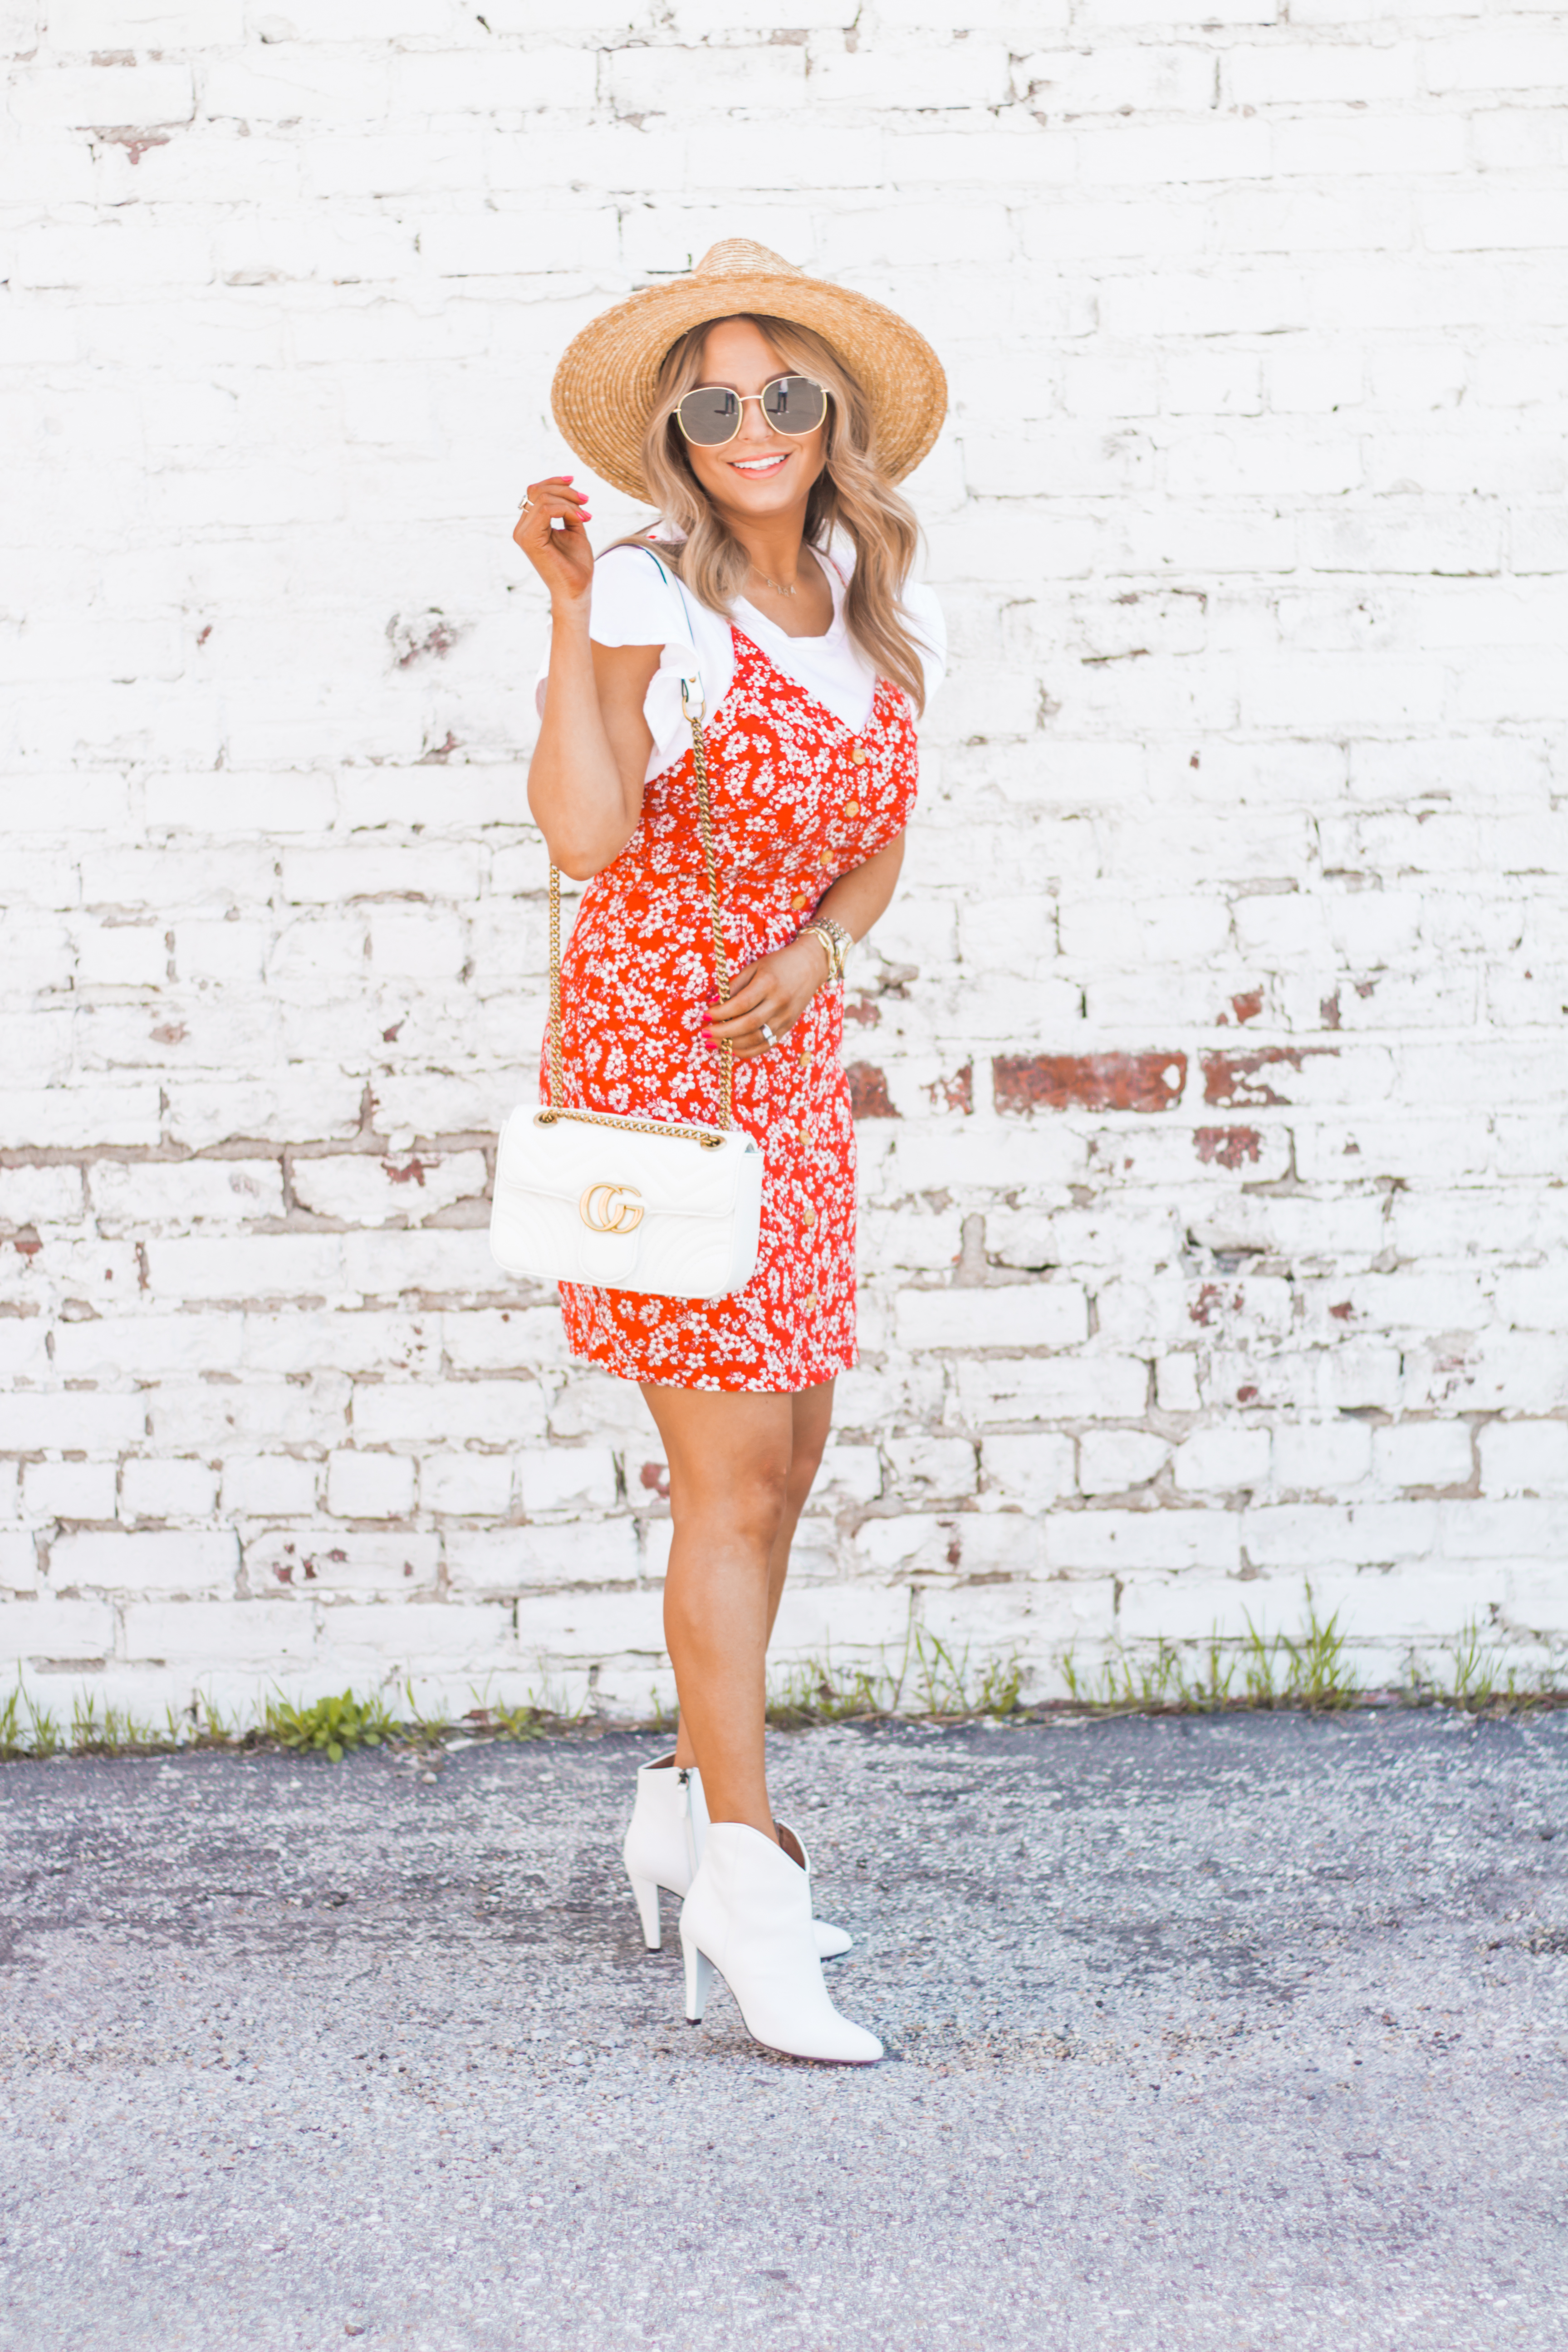 red-sundress-spring-summer-dress-floral dress-women's fashion- spring fashion-summer fashion-brixton hat-white booties-Omaha blogger-sabby style-9